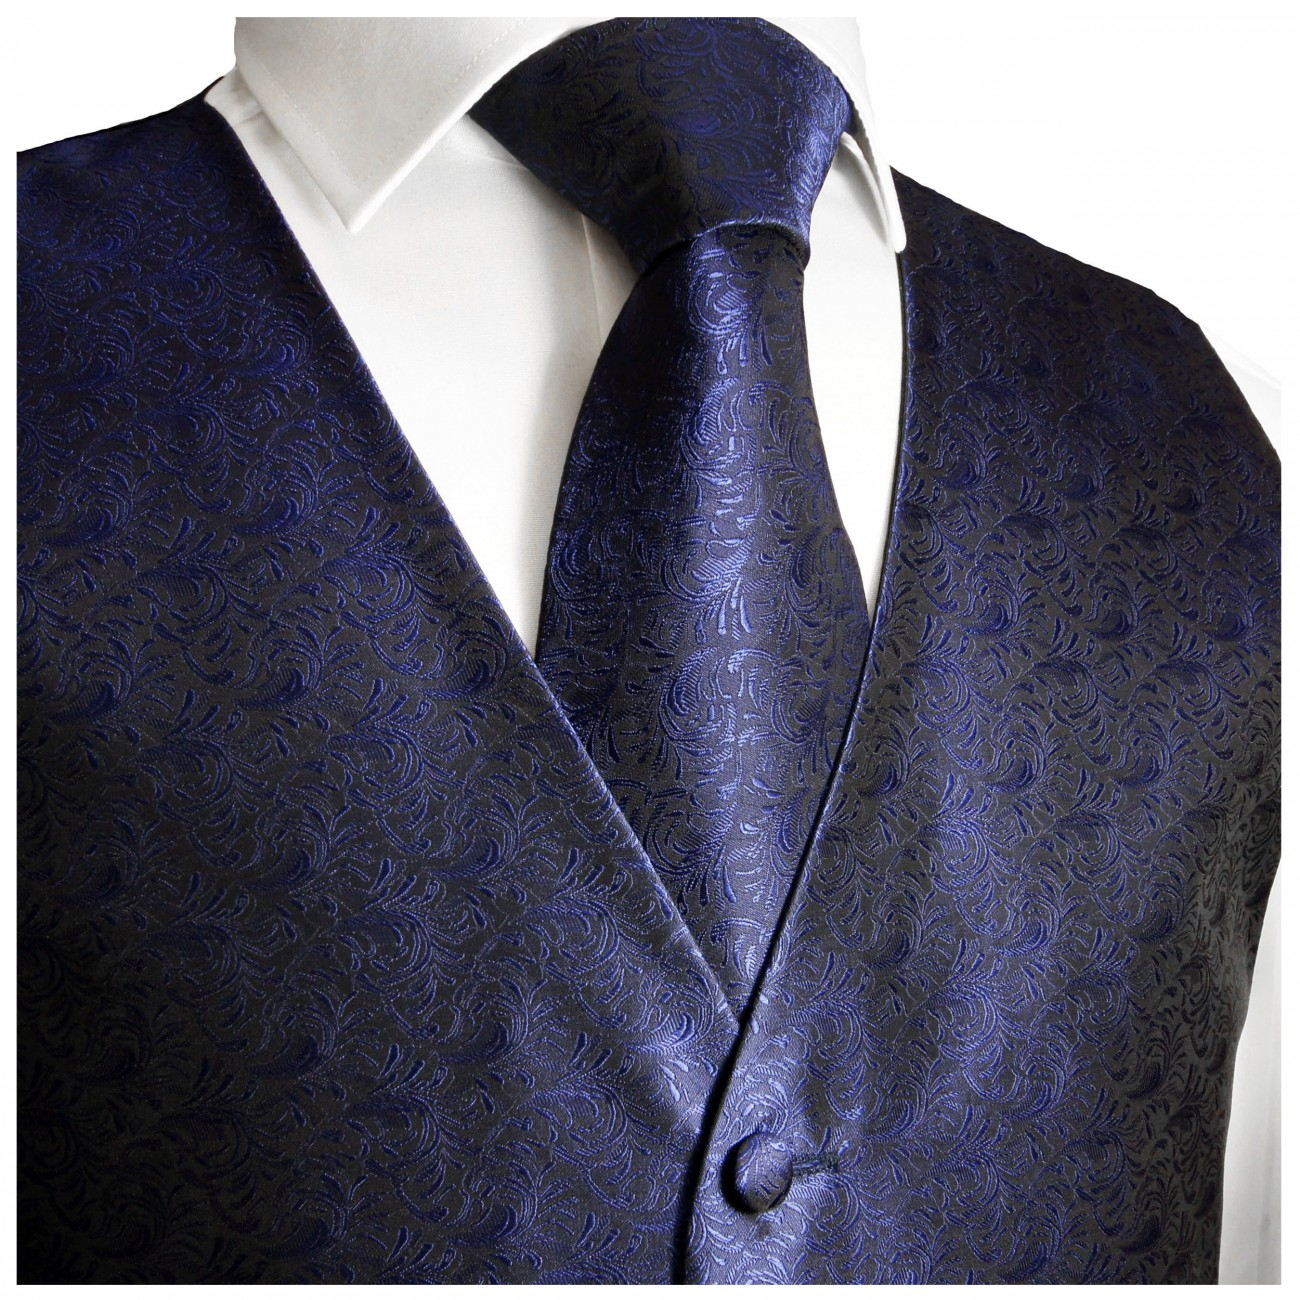 Blue waistcoat for wedding with necktie ascot tie pocket square and cufflinks v6